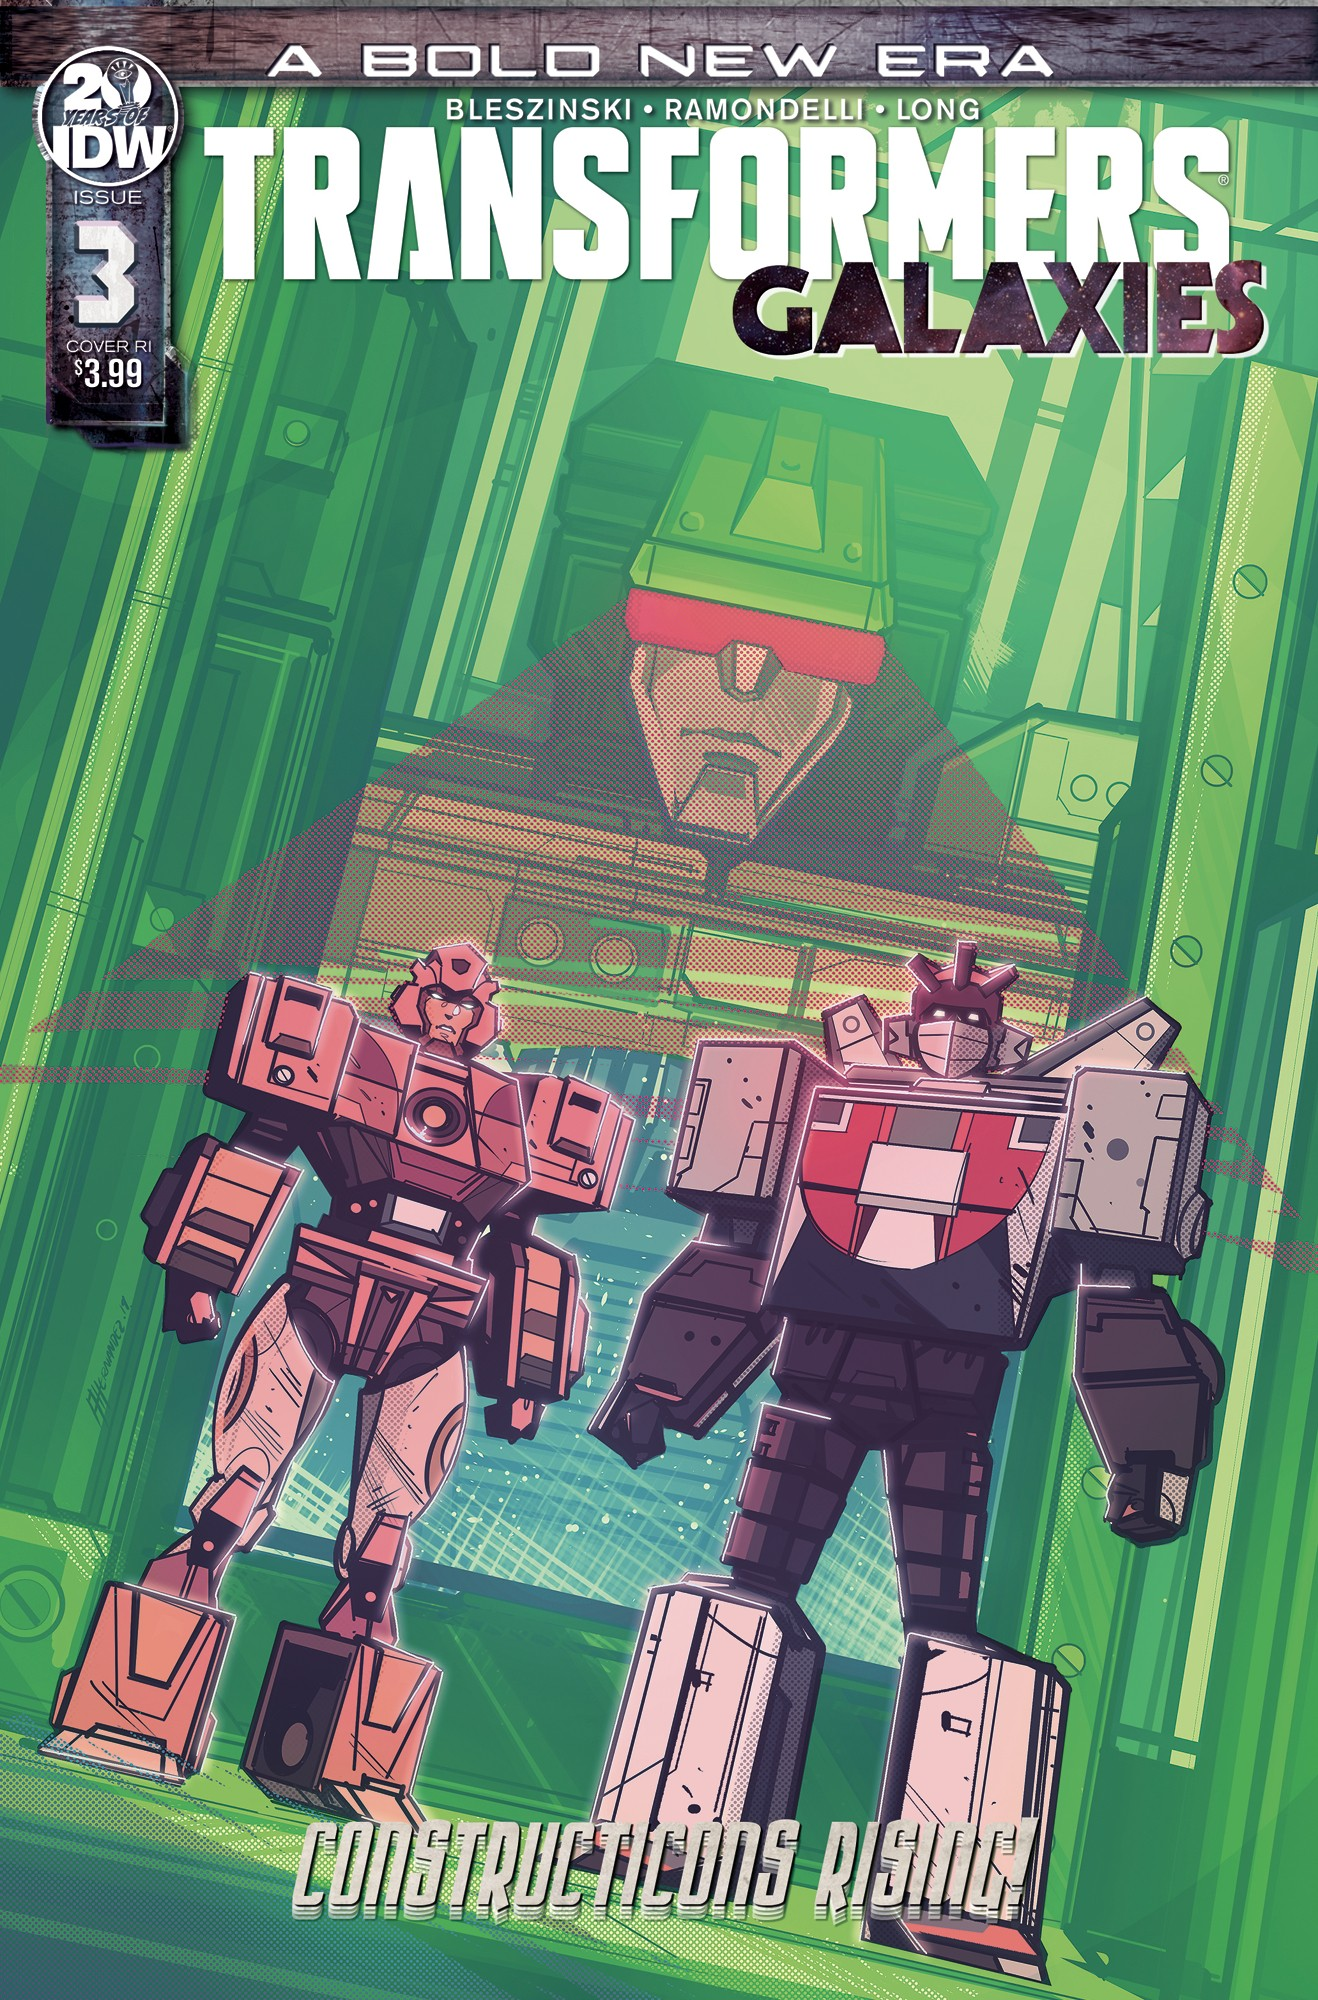 Transformers News: New Retailer Incentive Covers Revealed For IDW Transformers #15, Galaxies #3 and #4